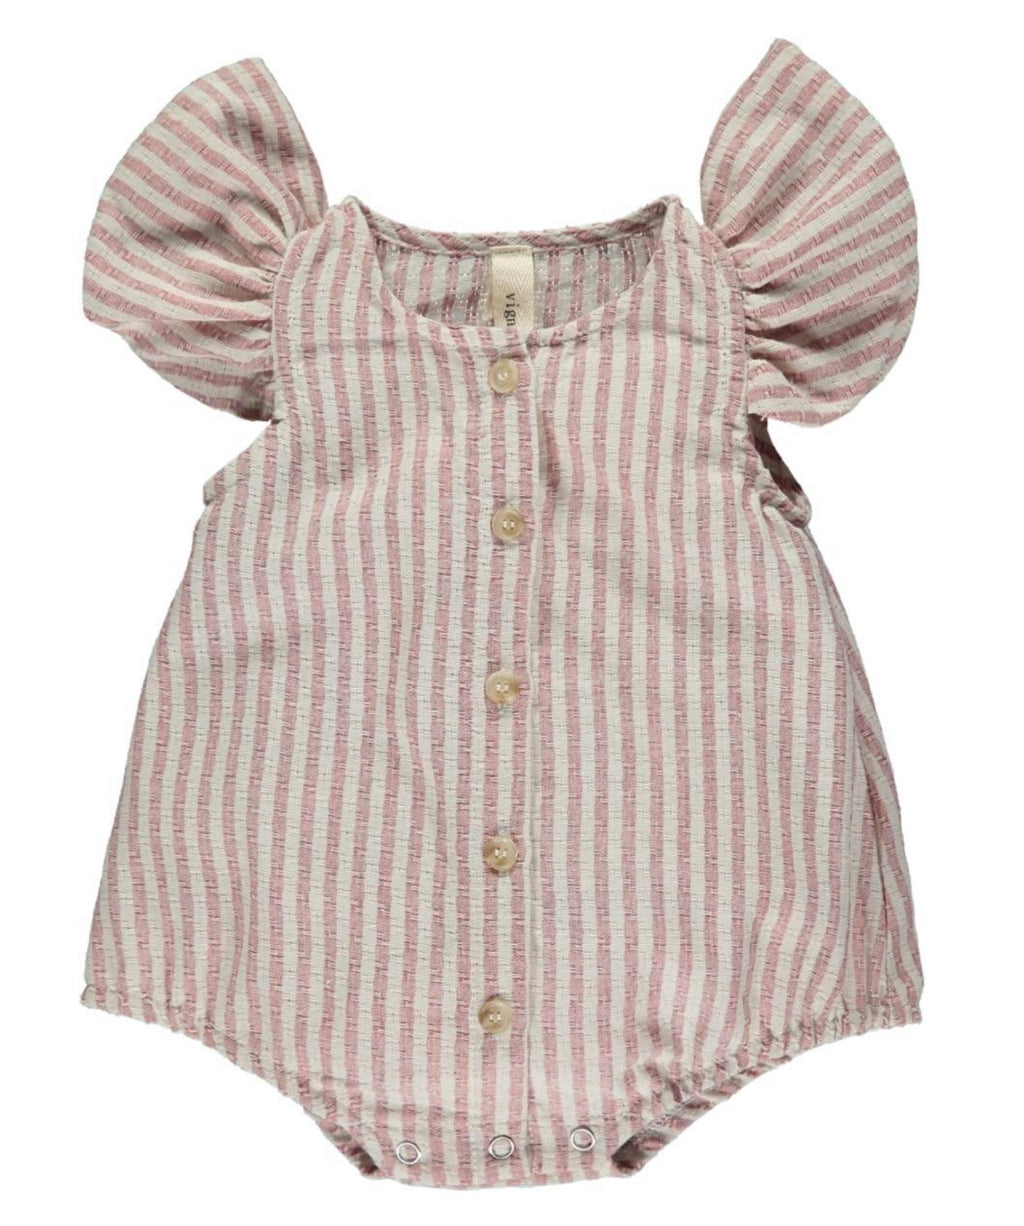 beige and cream stripe, button down bubble baby romper.